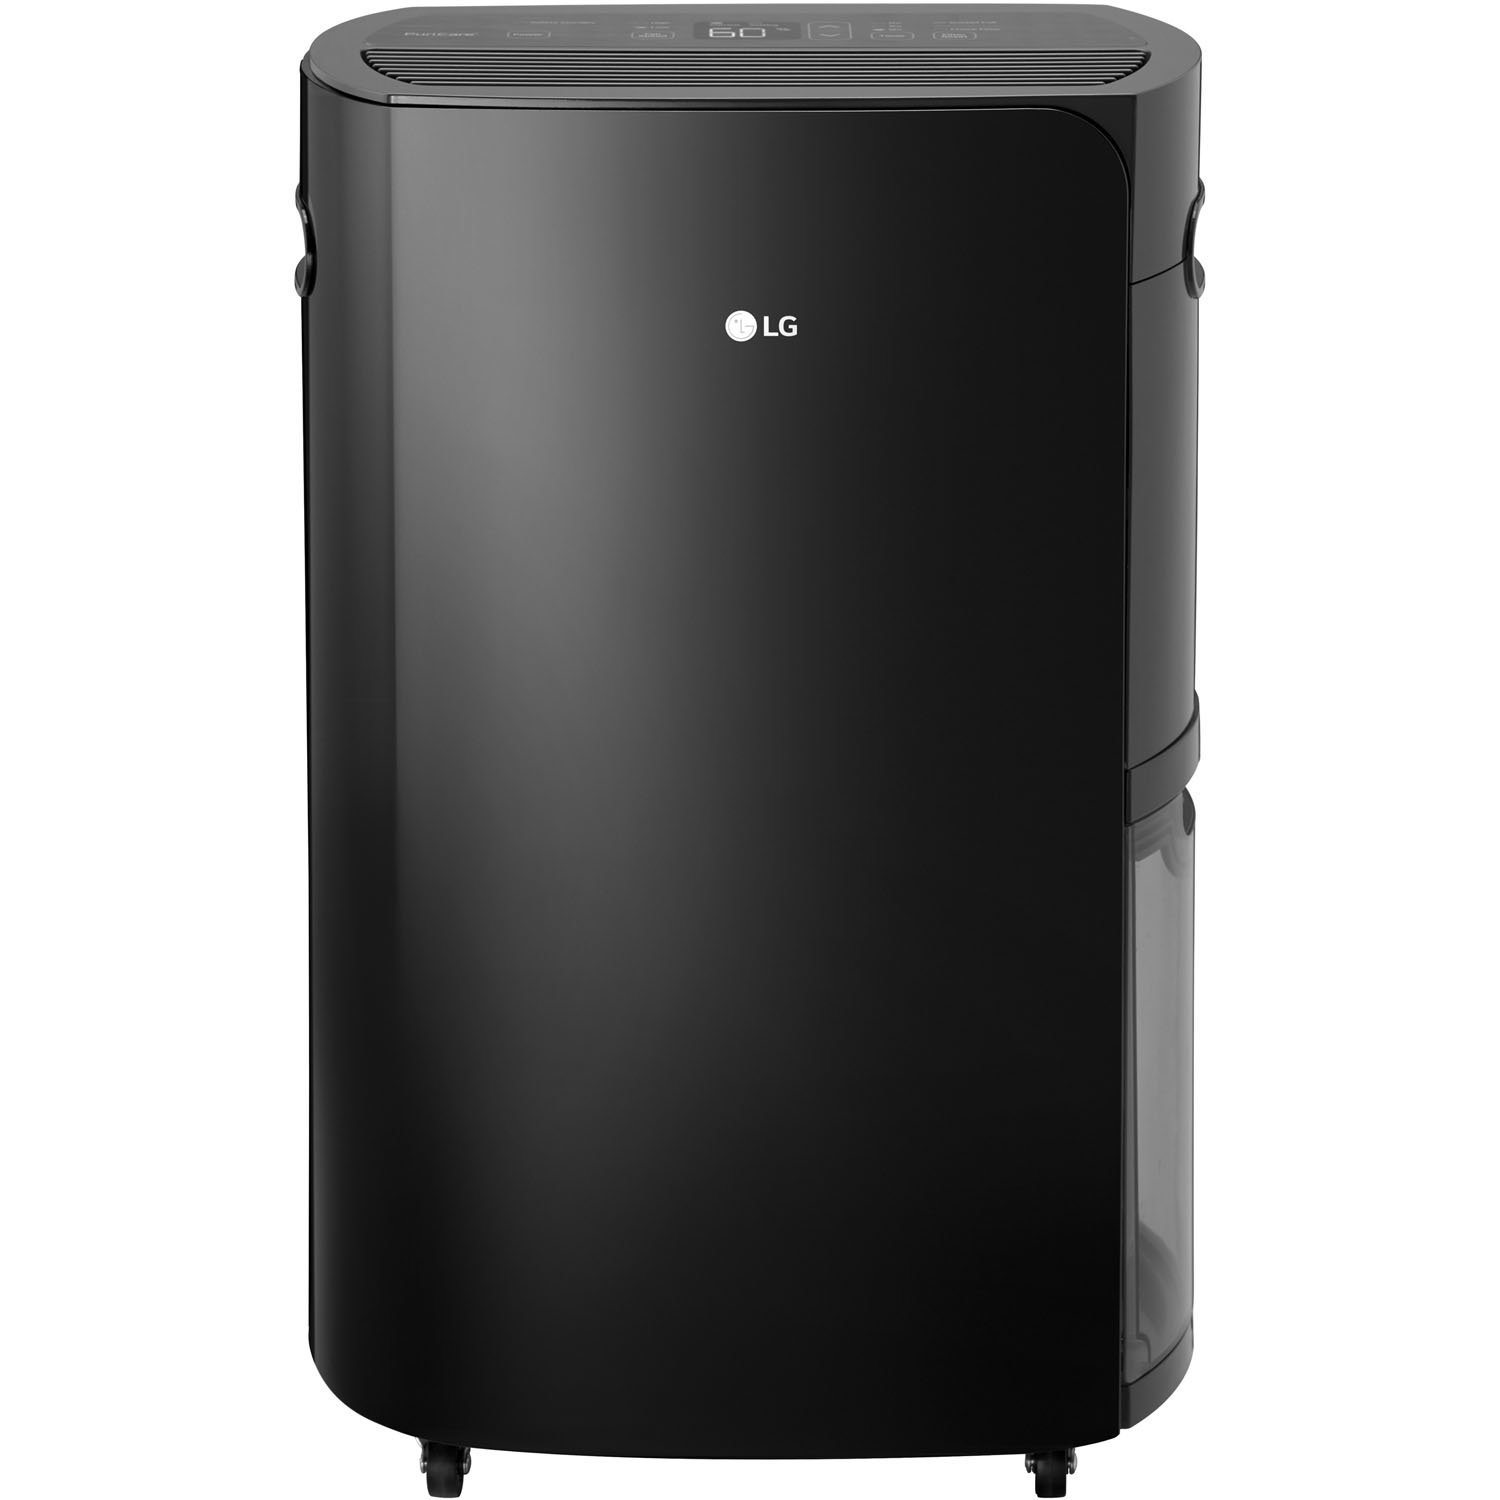 LG Energy Star PuriCare 55-Pint Dehumidifier in Black,